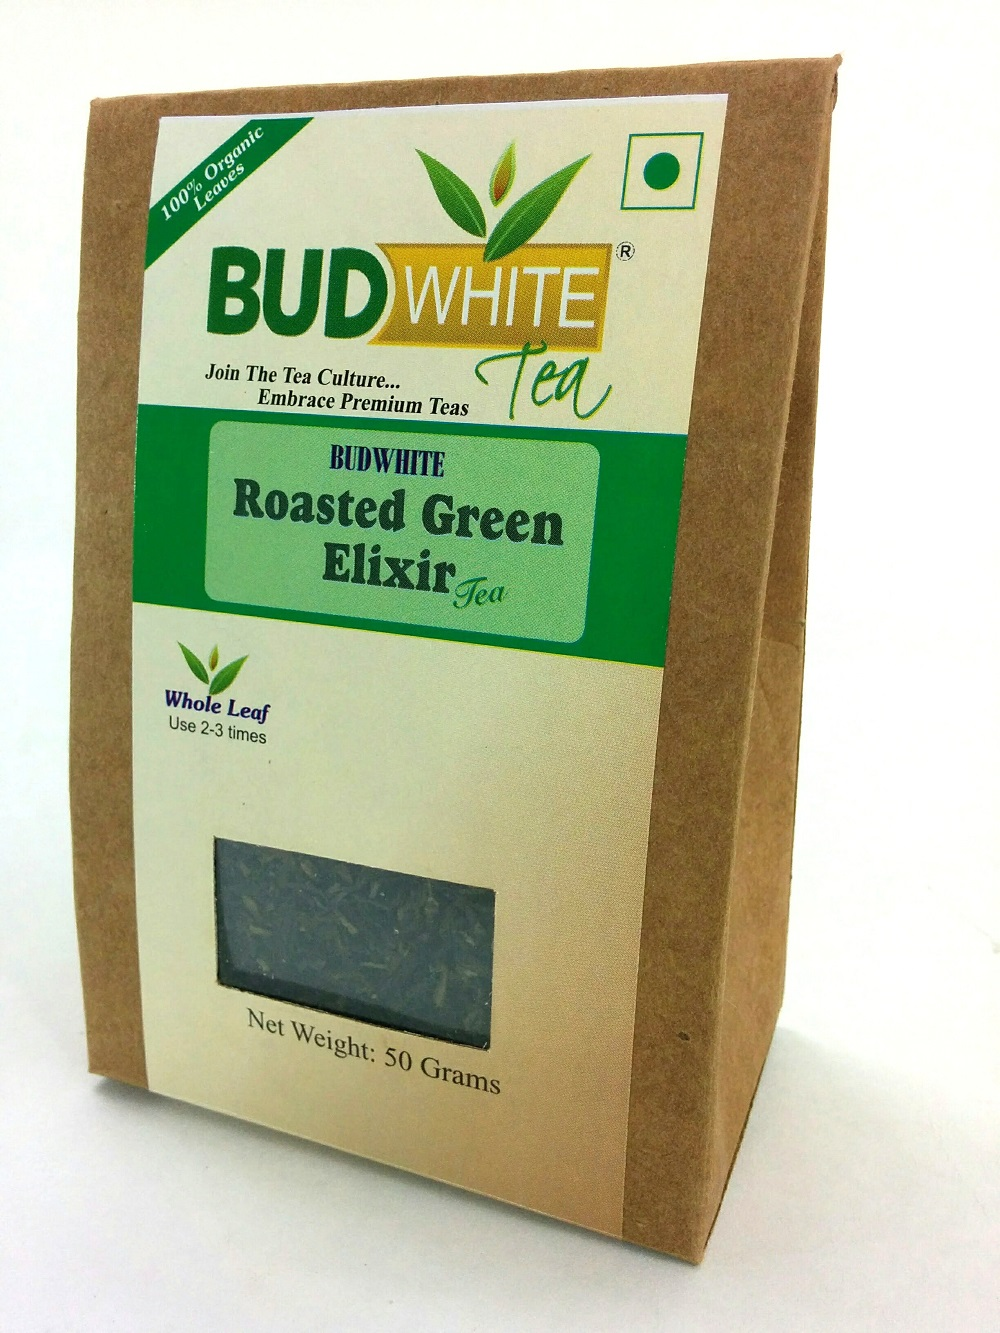 Roasted Green Elixir Organic Whole Leaf Tea